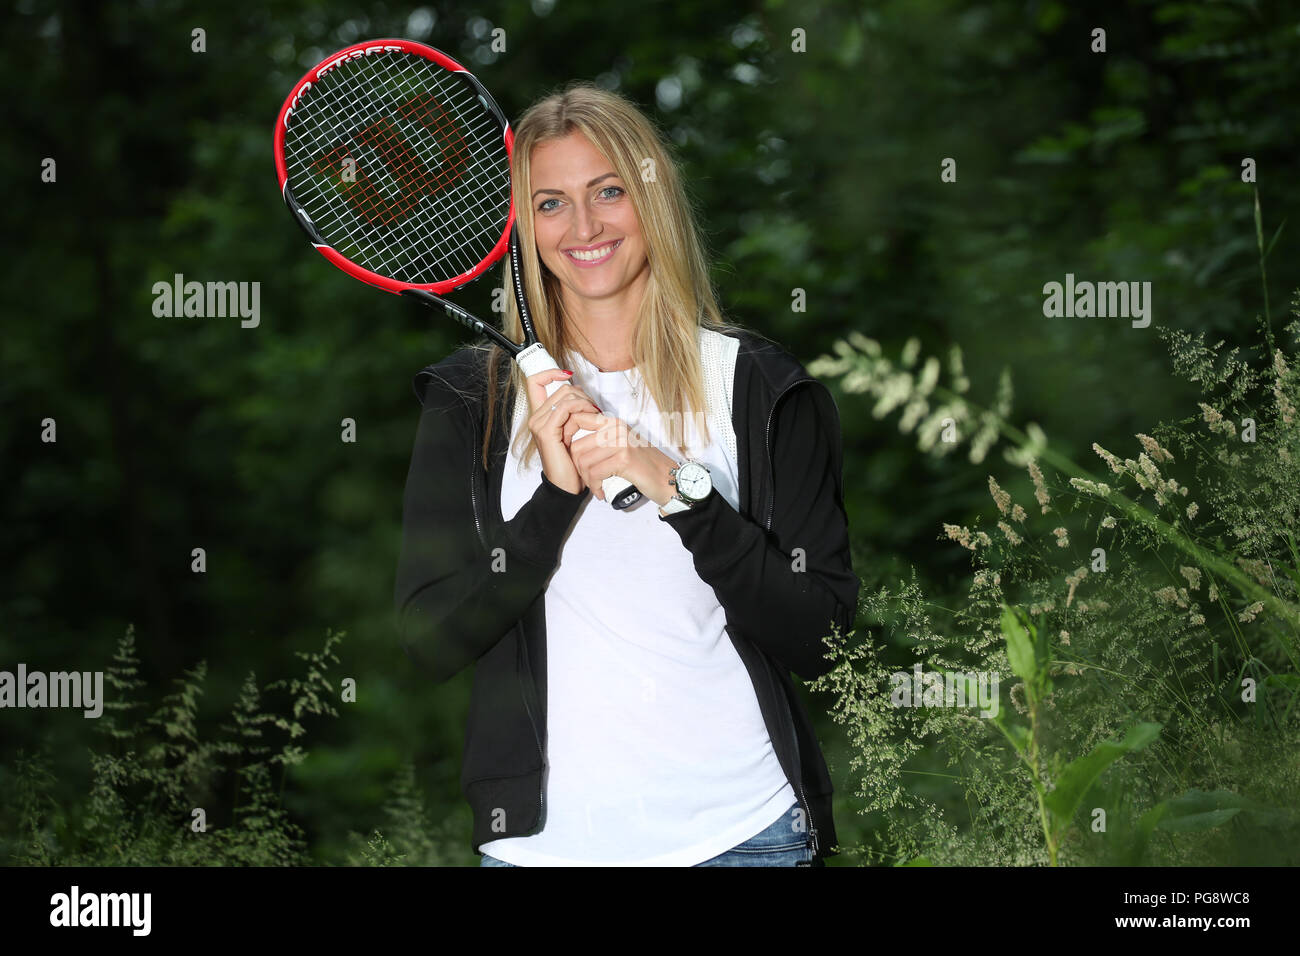 Tennis Photographer High Resolution Stock Photography And Images Alamy